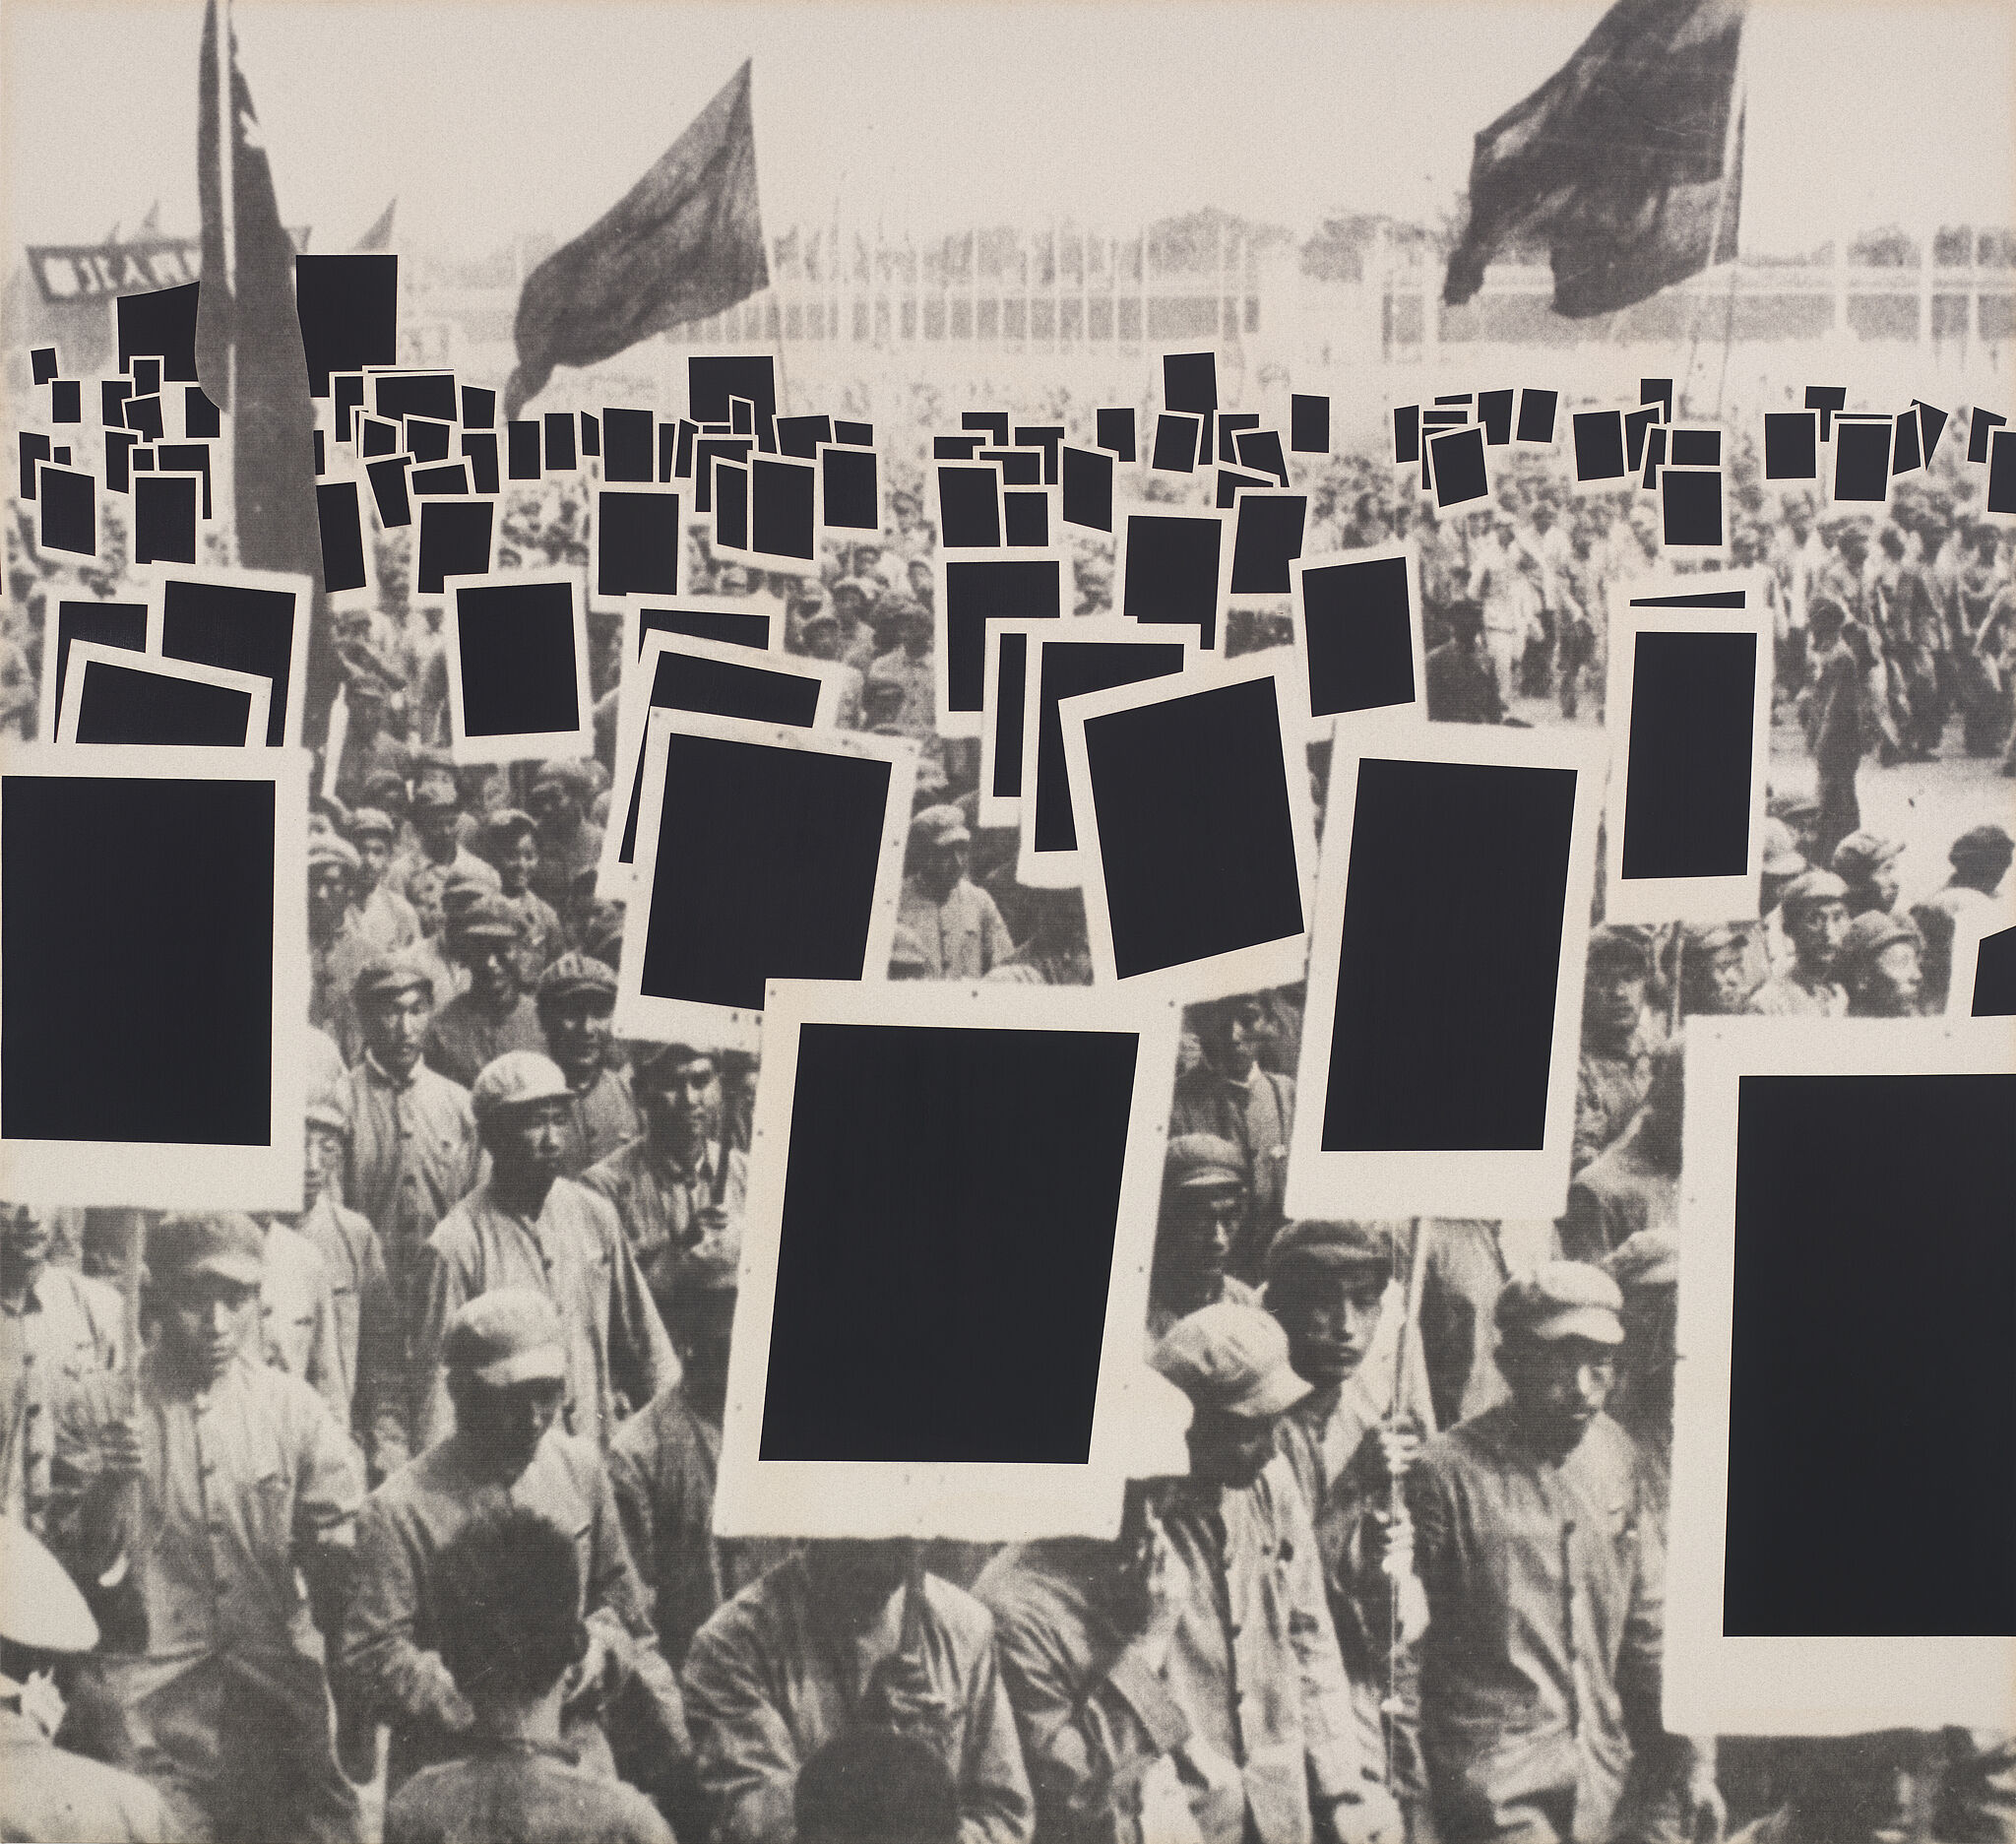 Black and white photograph of protesters with black rectangles covering their signs.